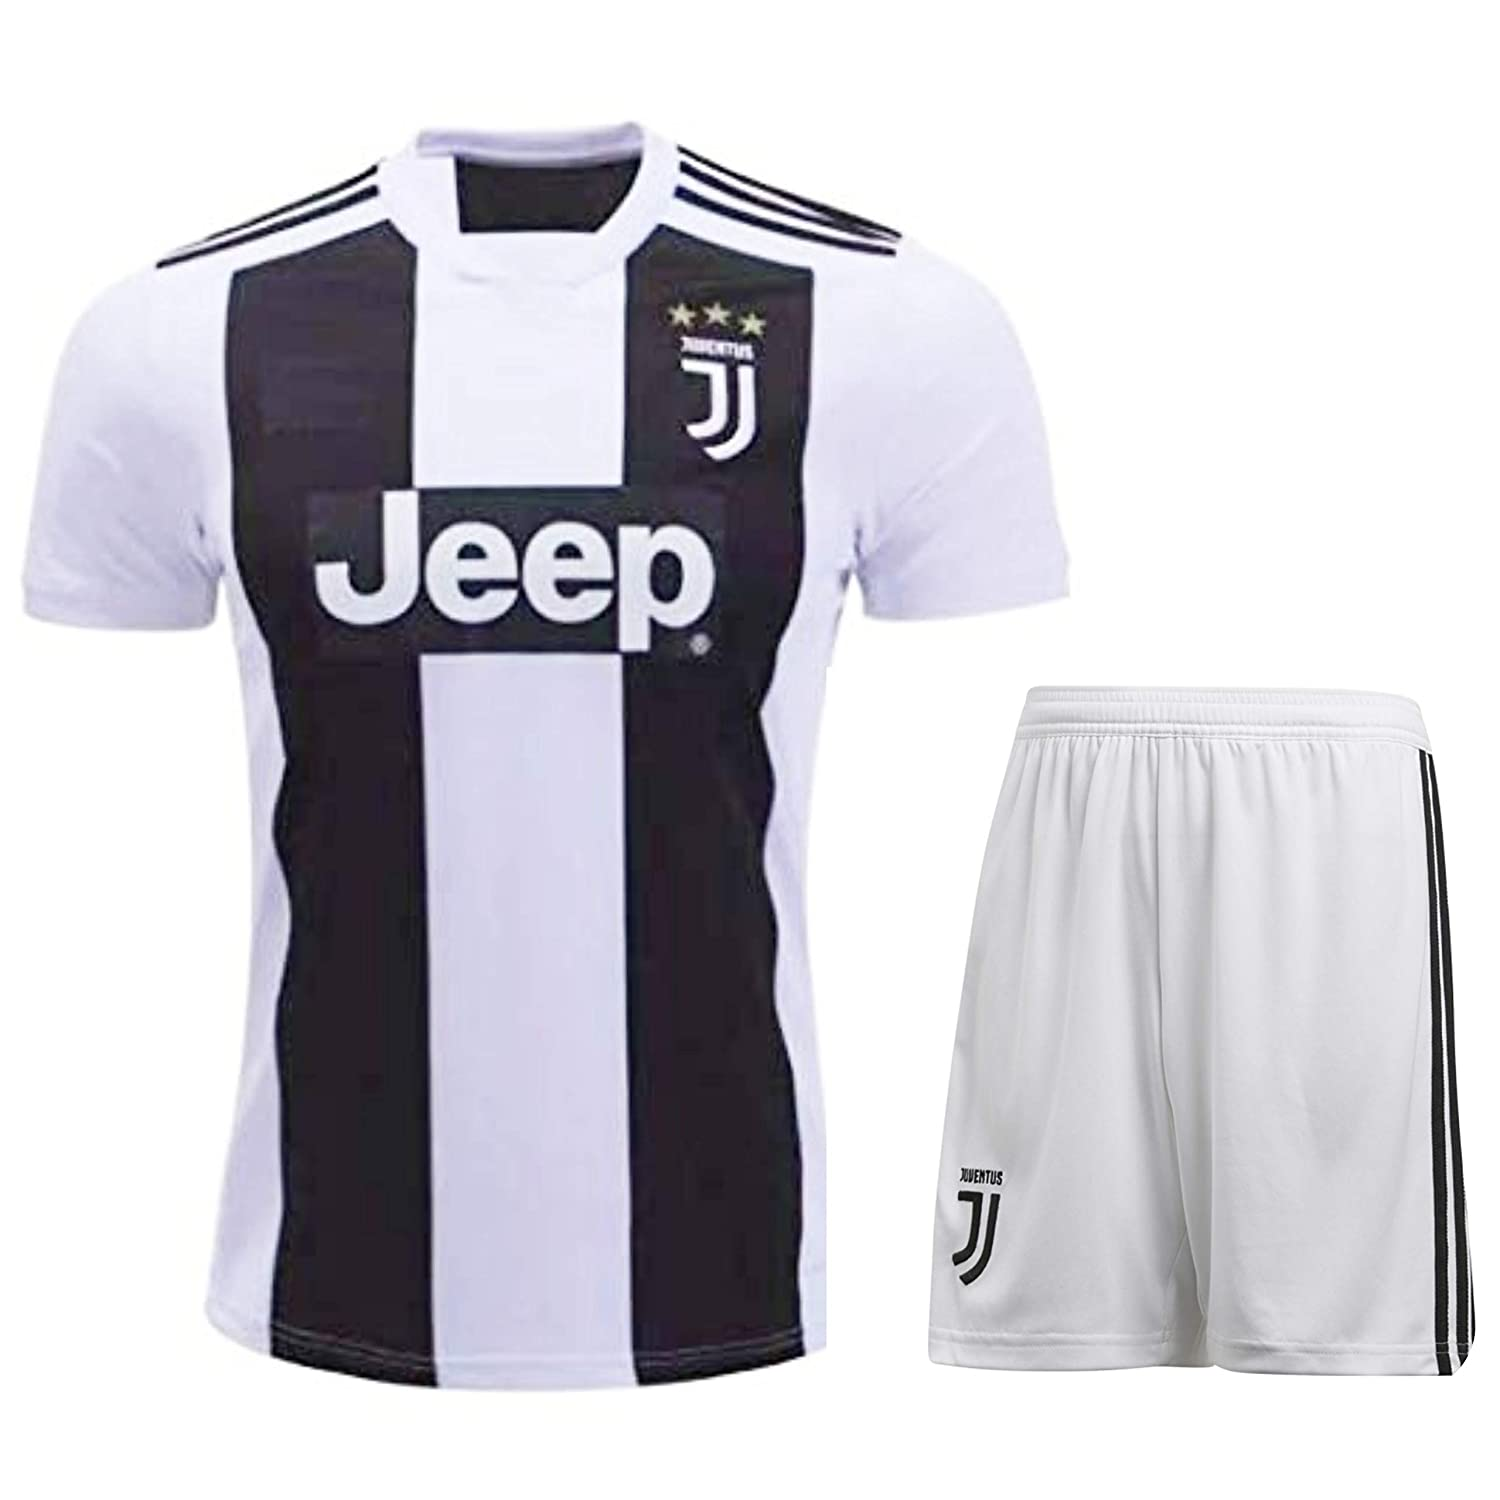 buy online 7aee3 26f68 HeadTurners Christiano Ronaldo Juventus Jersey Set (T Shirt and Shorts)  (NonBranded)